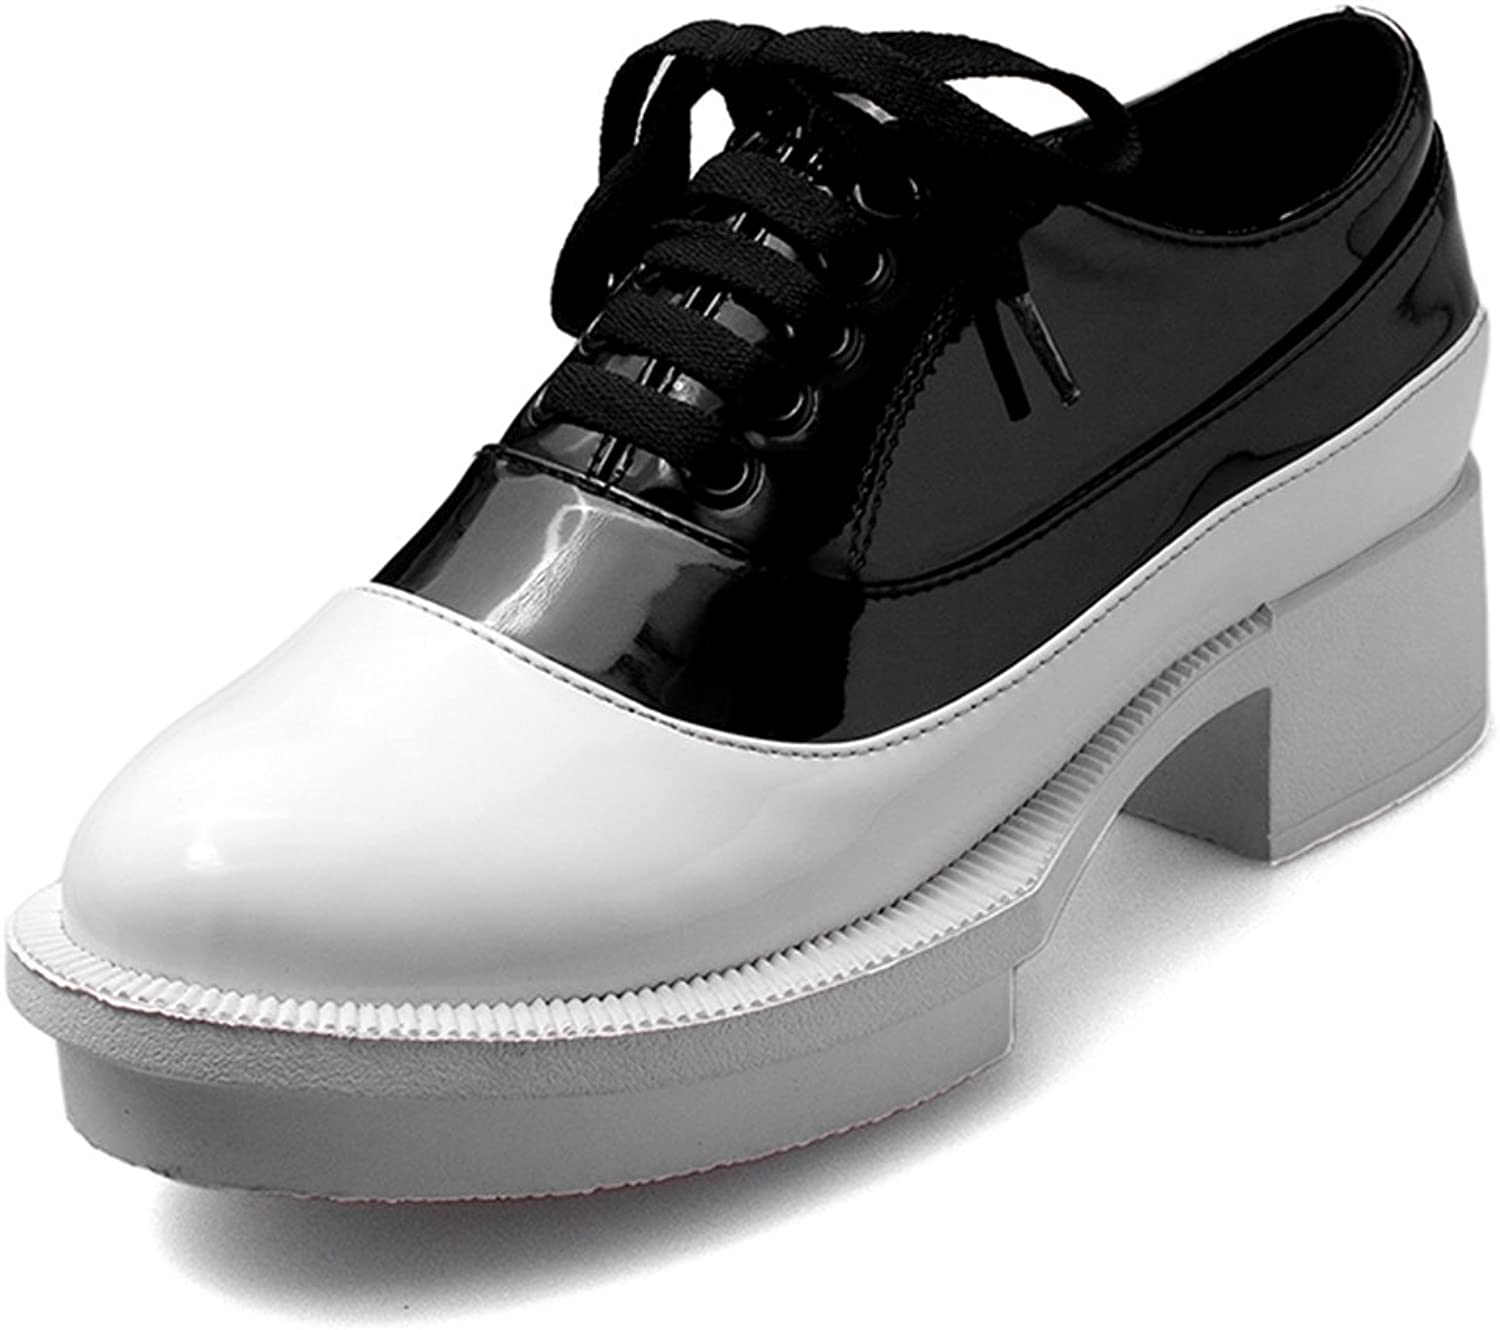 DecoStain Women's Fashion Comfortable Patent Leather Low Heels Platform Sneakers Lace Up Creepers Sports Jogging Walking Trainers shoes